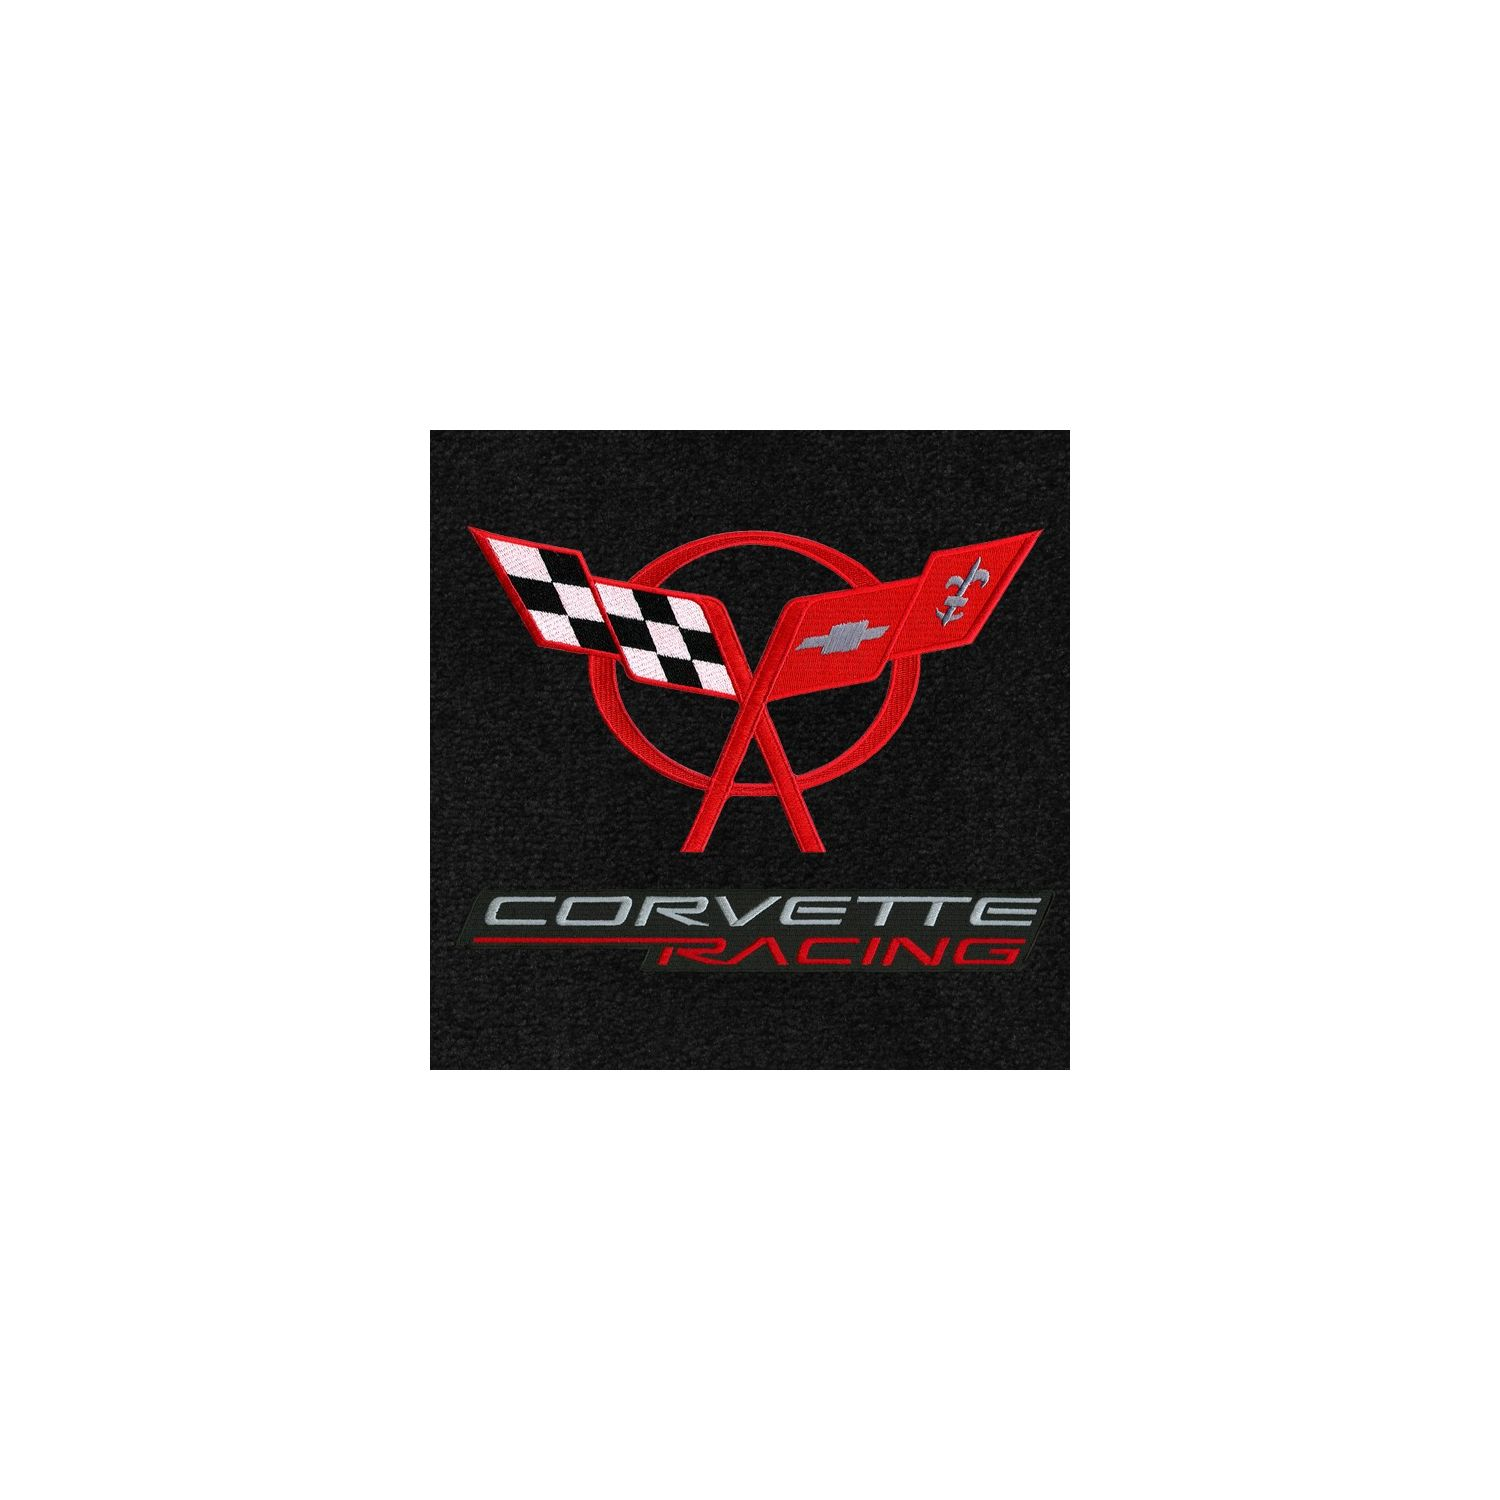 Lloyd Mats Classic Loop Black Front Floor Mats For Corvette C5 With C5 Red Logo Corvette Racing Silver Red On Black Applique